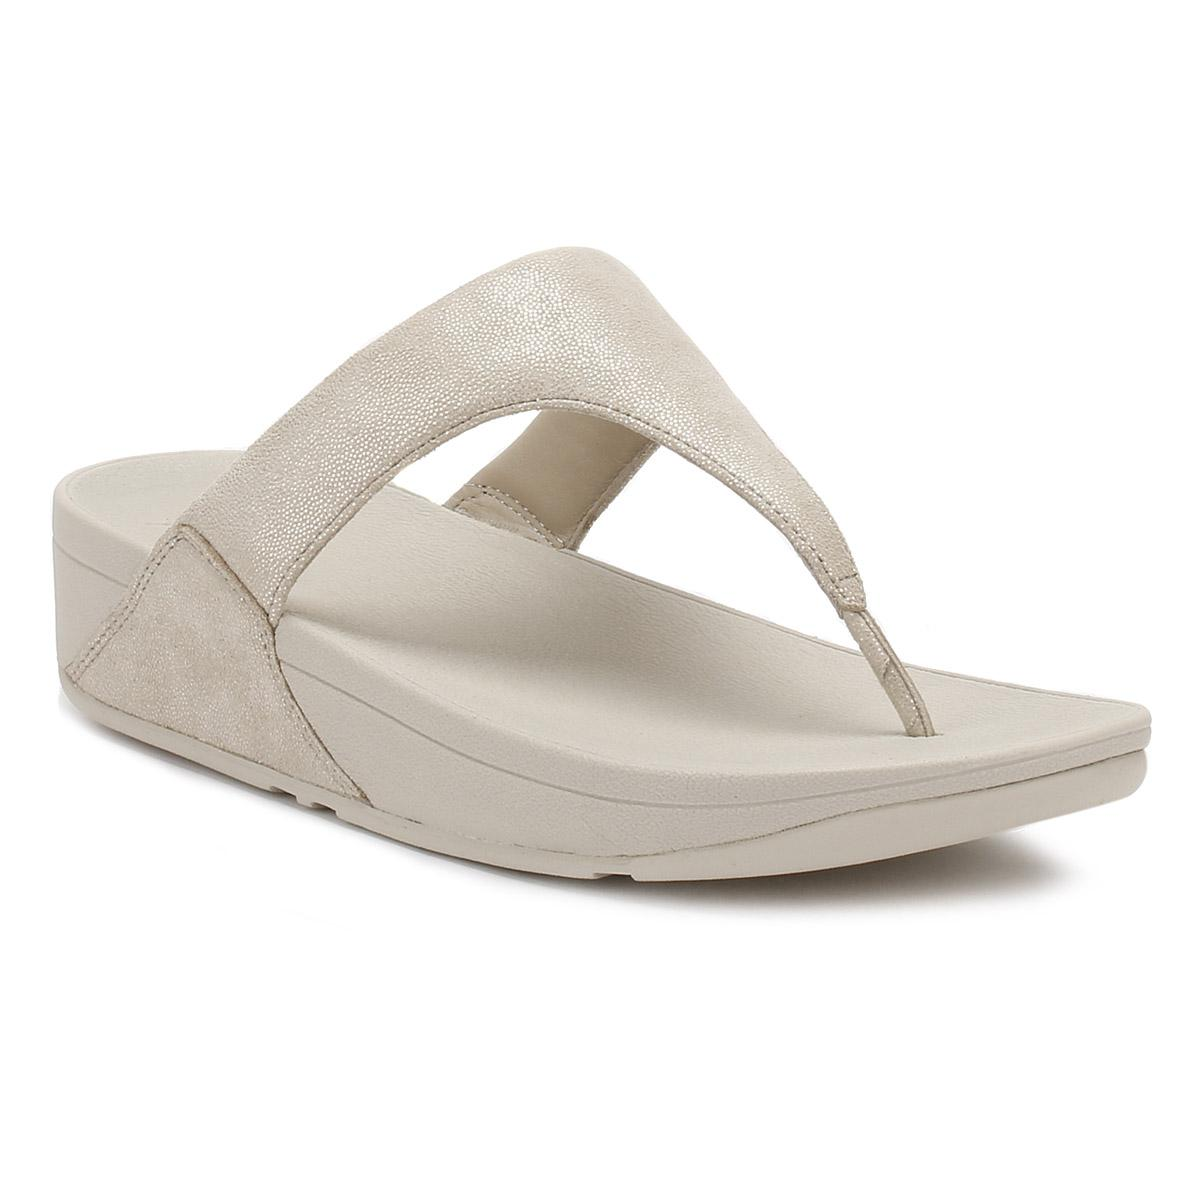 41df20e86 Lyst - Fitflop Womens Pale Gold Shimmy Suede Toe Post Sandal in Metallic